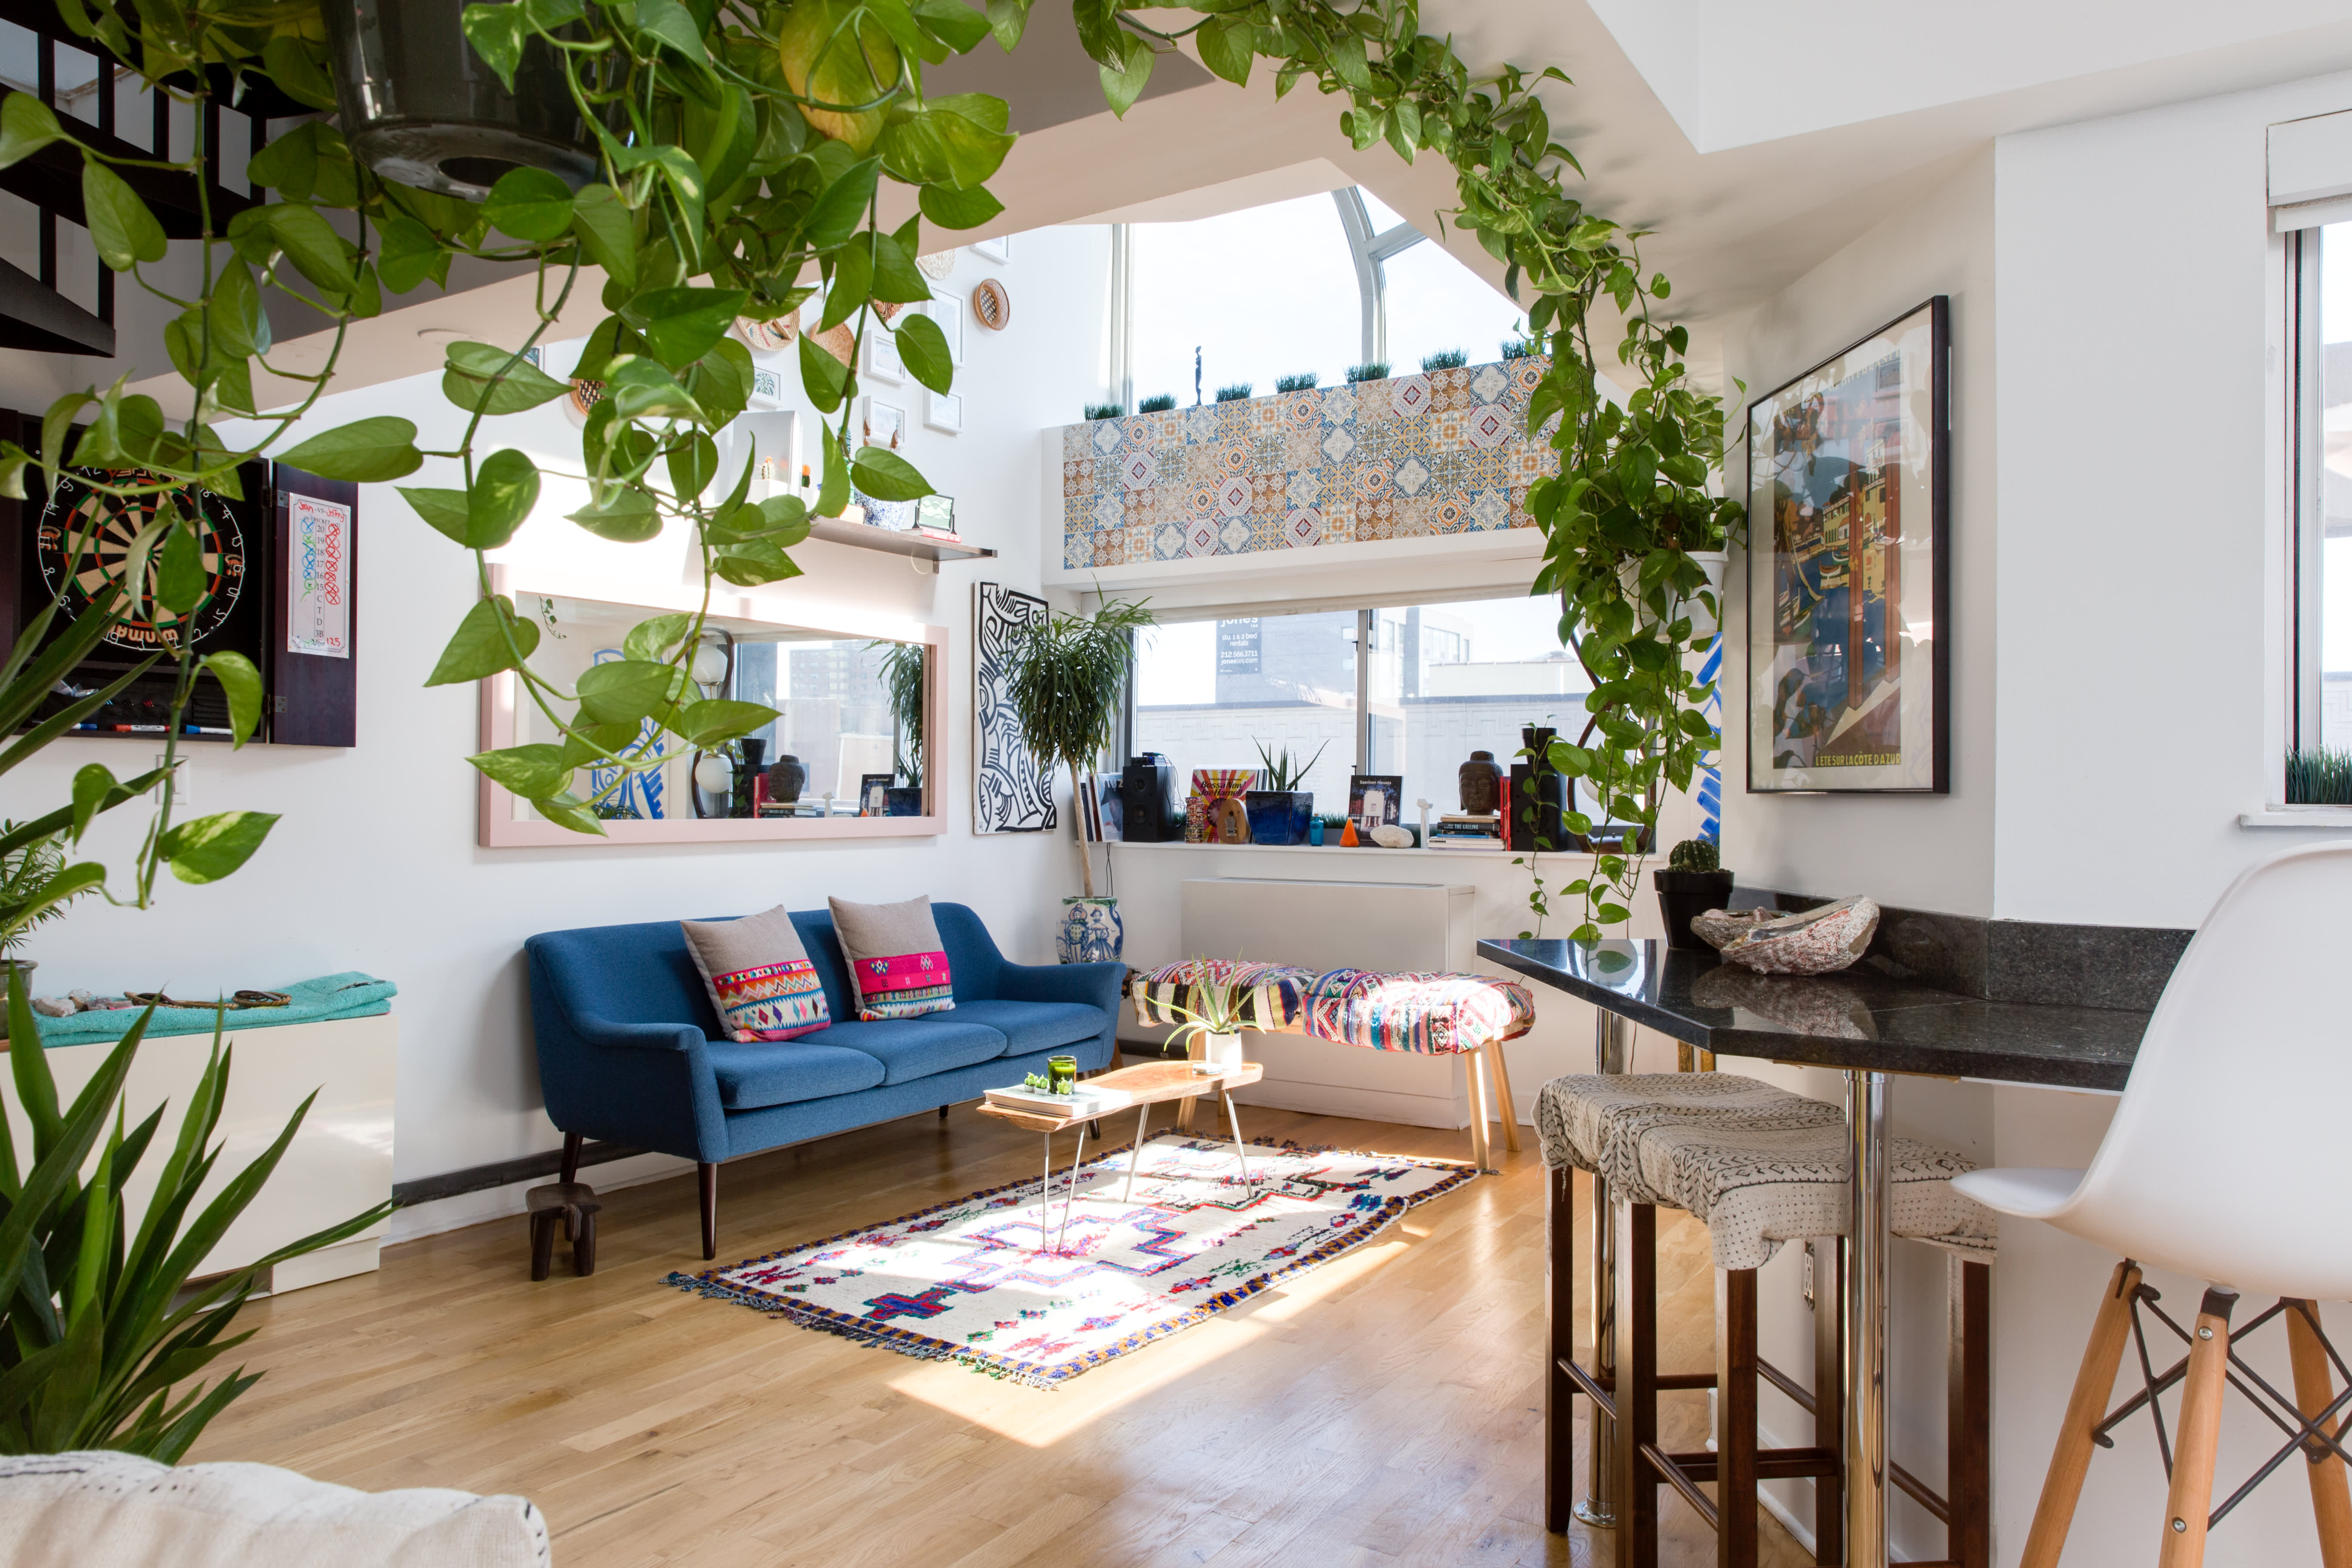 House Tour: A Sunny, Plant-Filled Manhattan Loft | Apartment ... on bathroom filled with plants, bedroom filled with plants, house full of plants, house books,